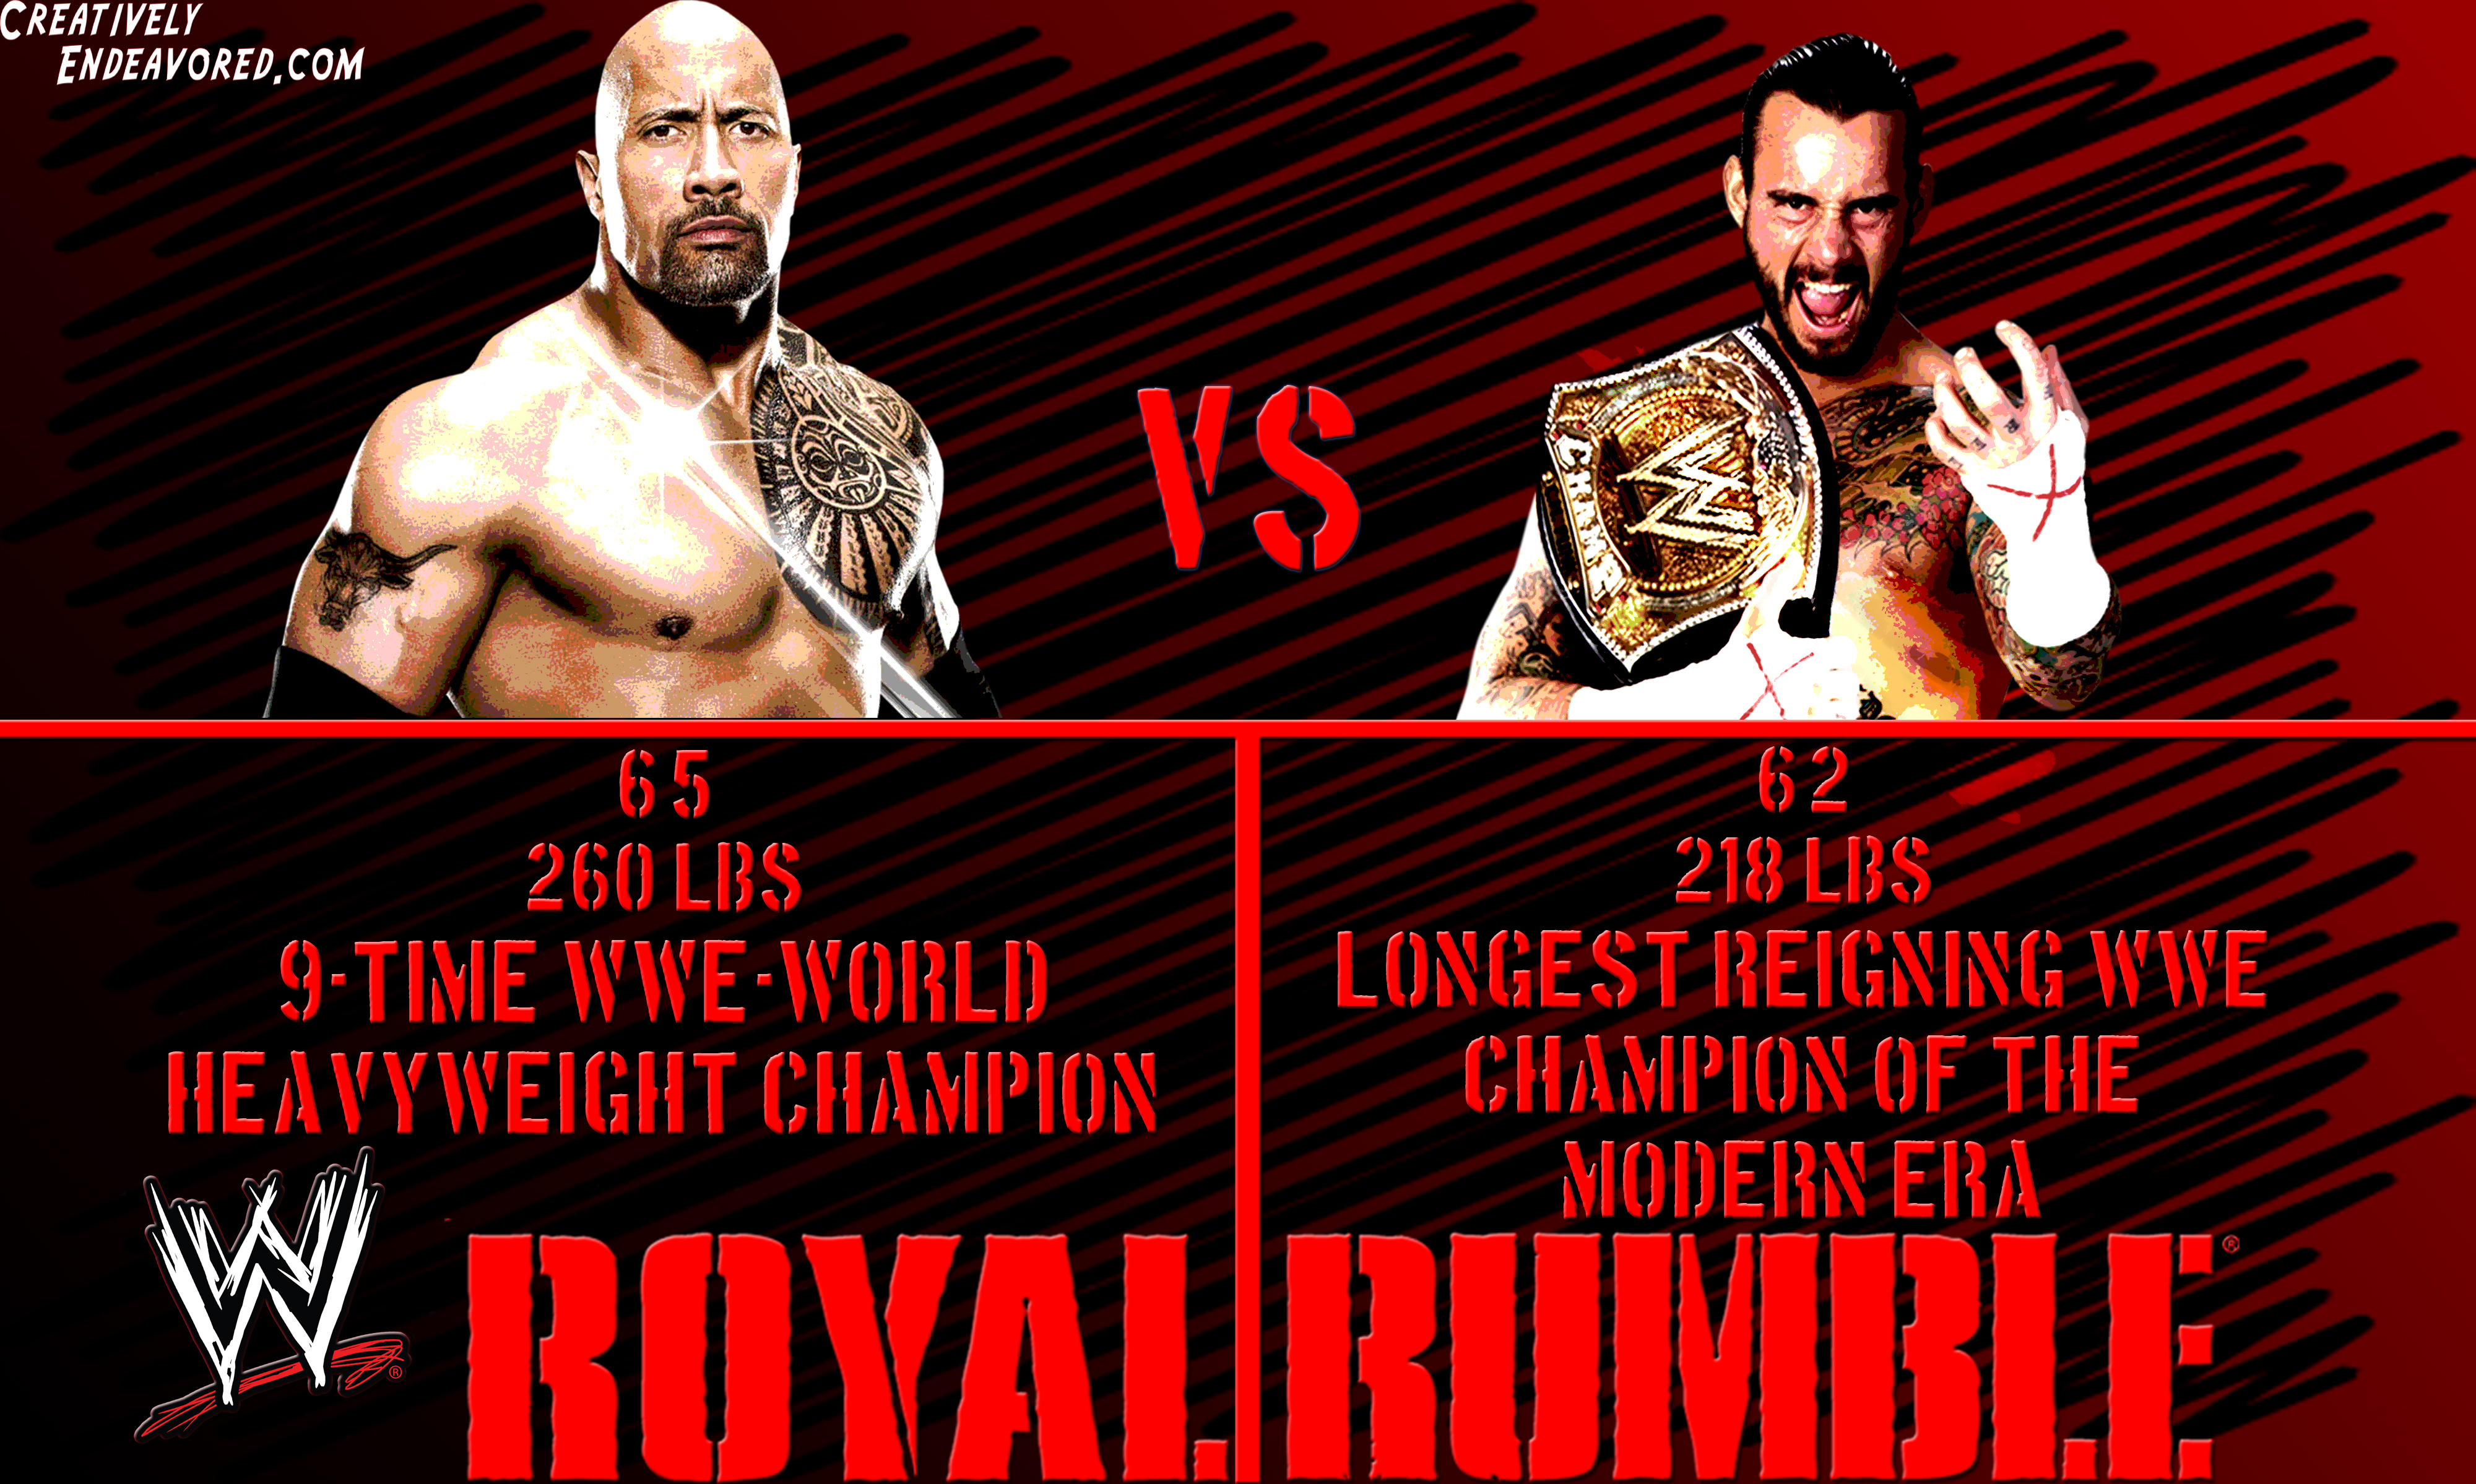 Wallpaper wednesday cm punk vs the rock at wwe royal rumble 2013 punk vs rock royal rumble wallpaper voltagebd Choice Image